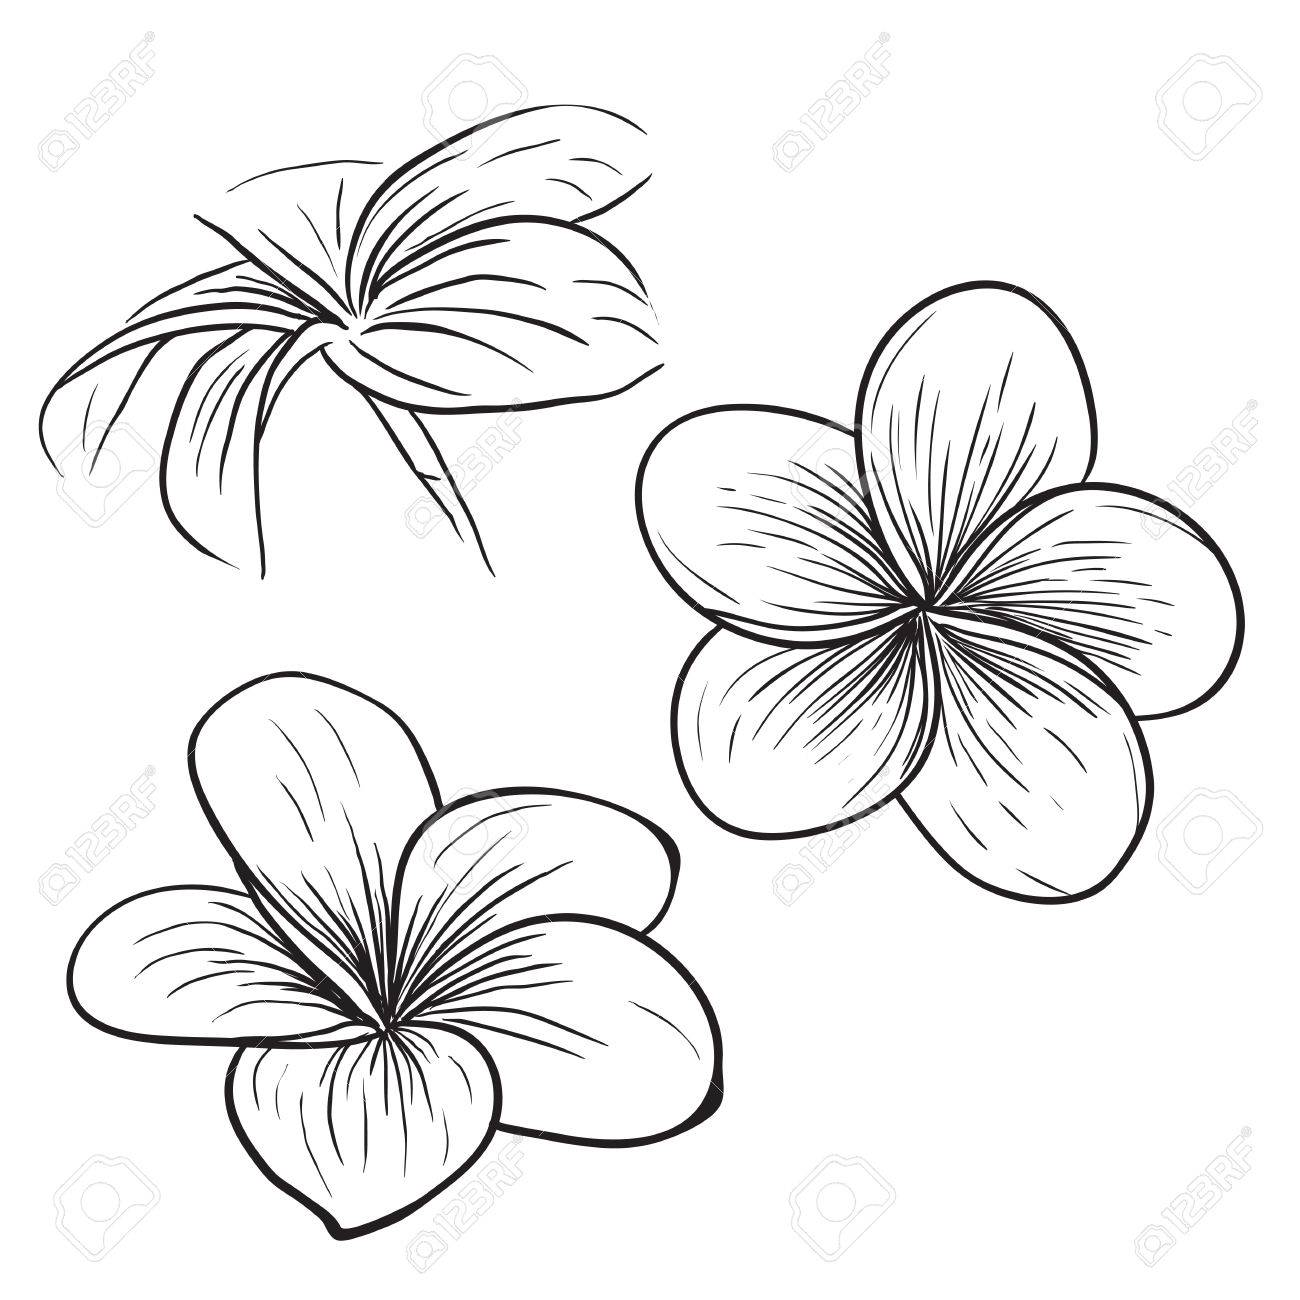 plumeria line drawing at getdrawings com